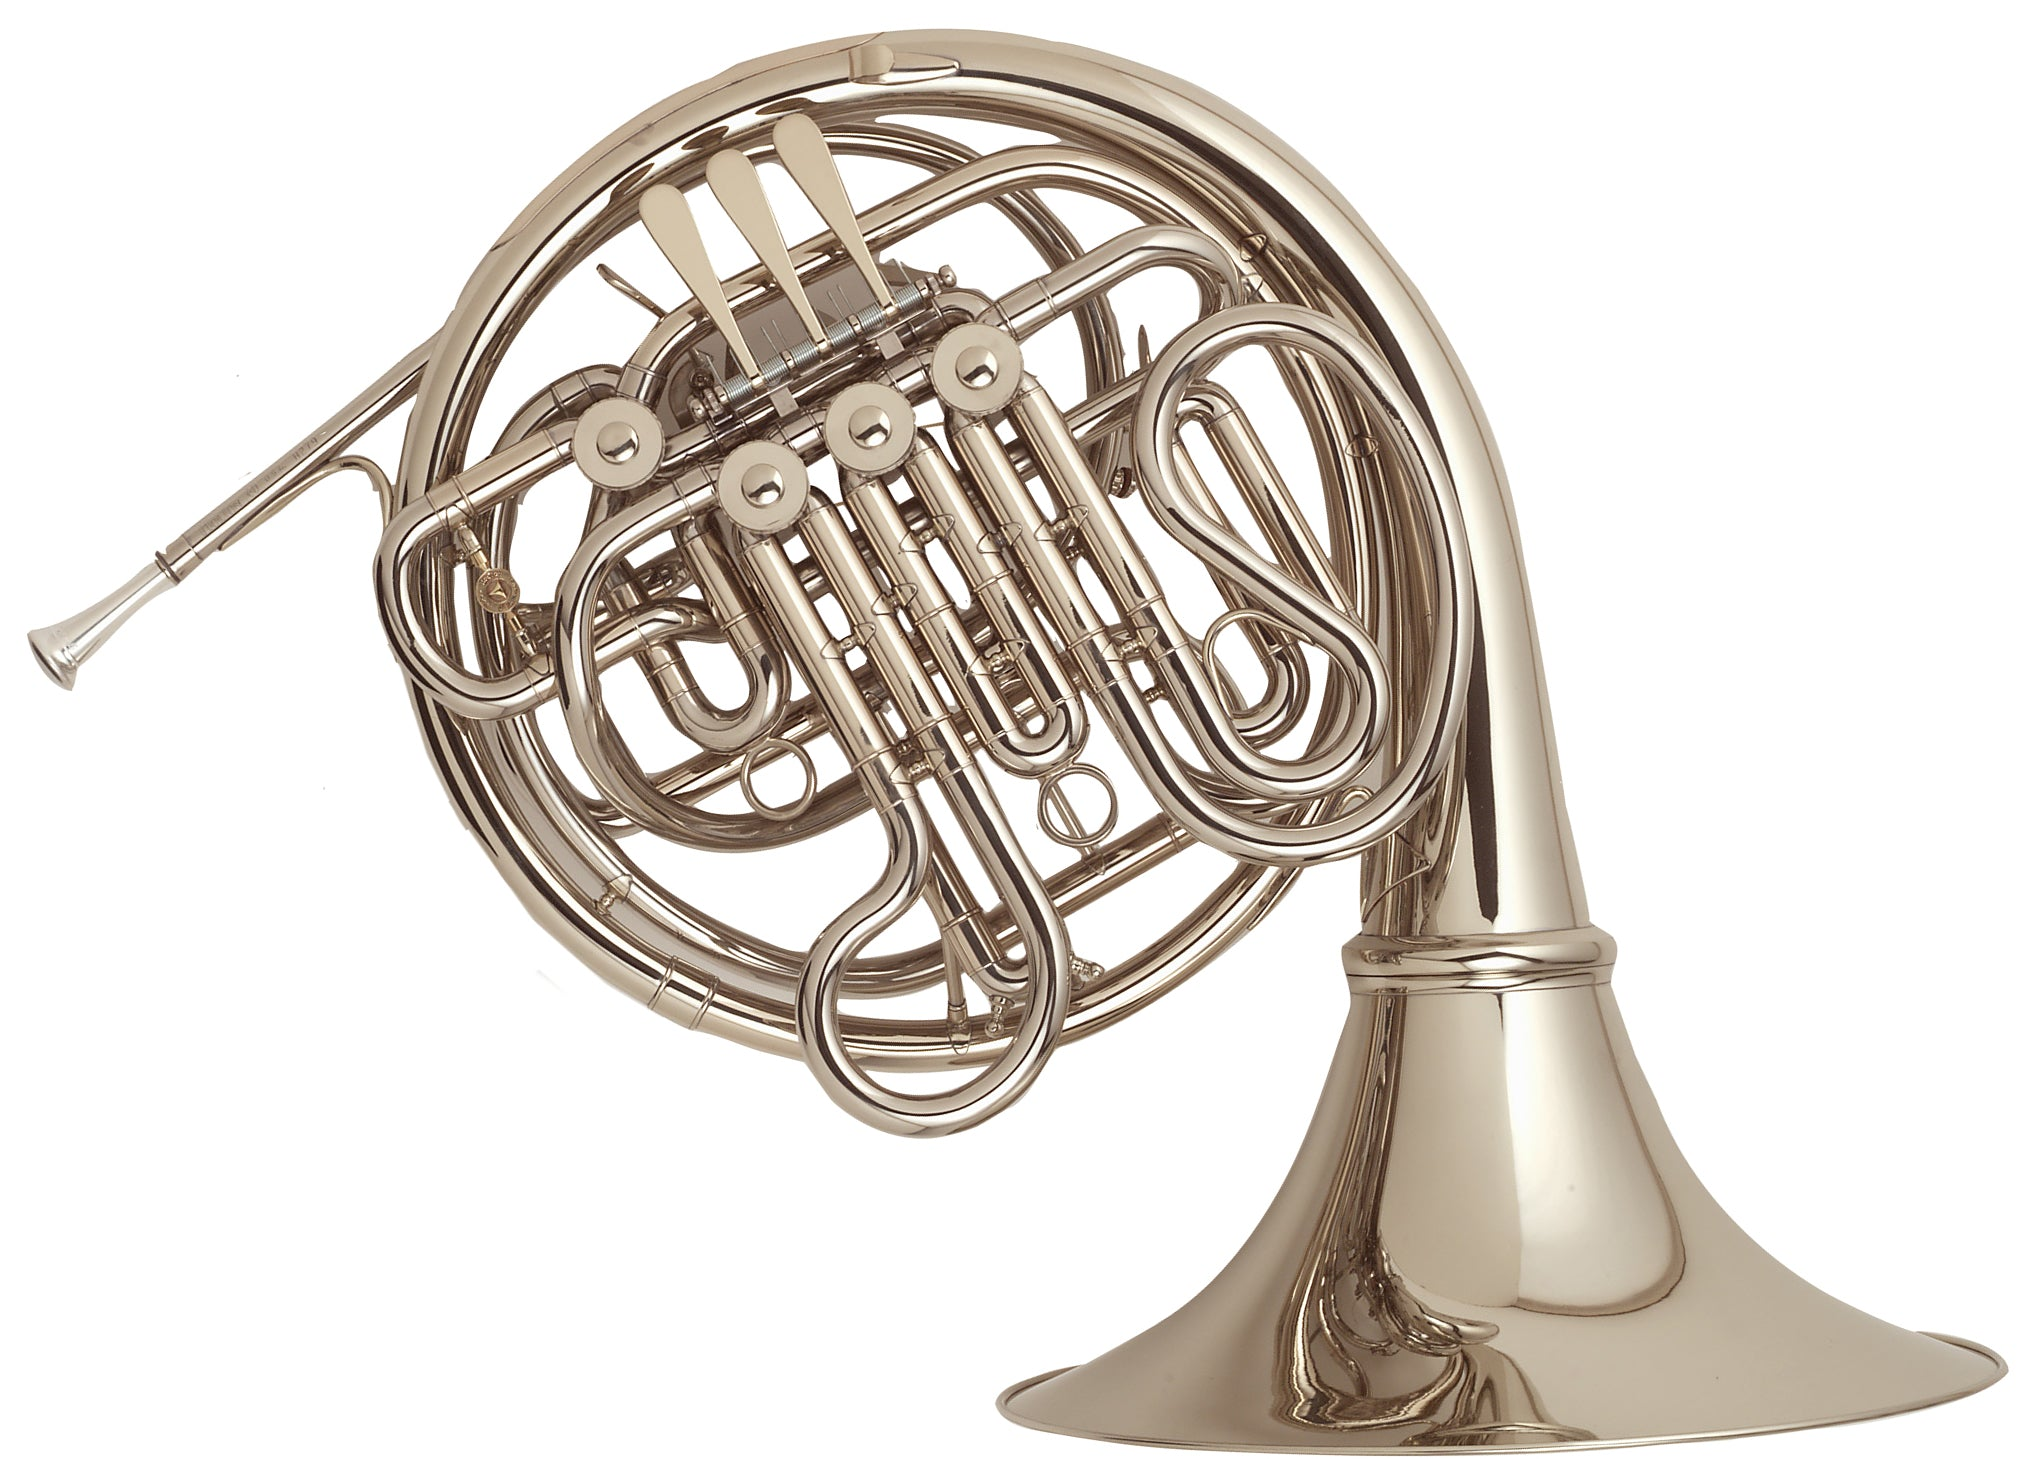 holton h279 double french horn w detachable bell chuck levin s